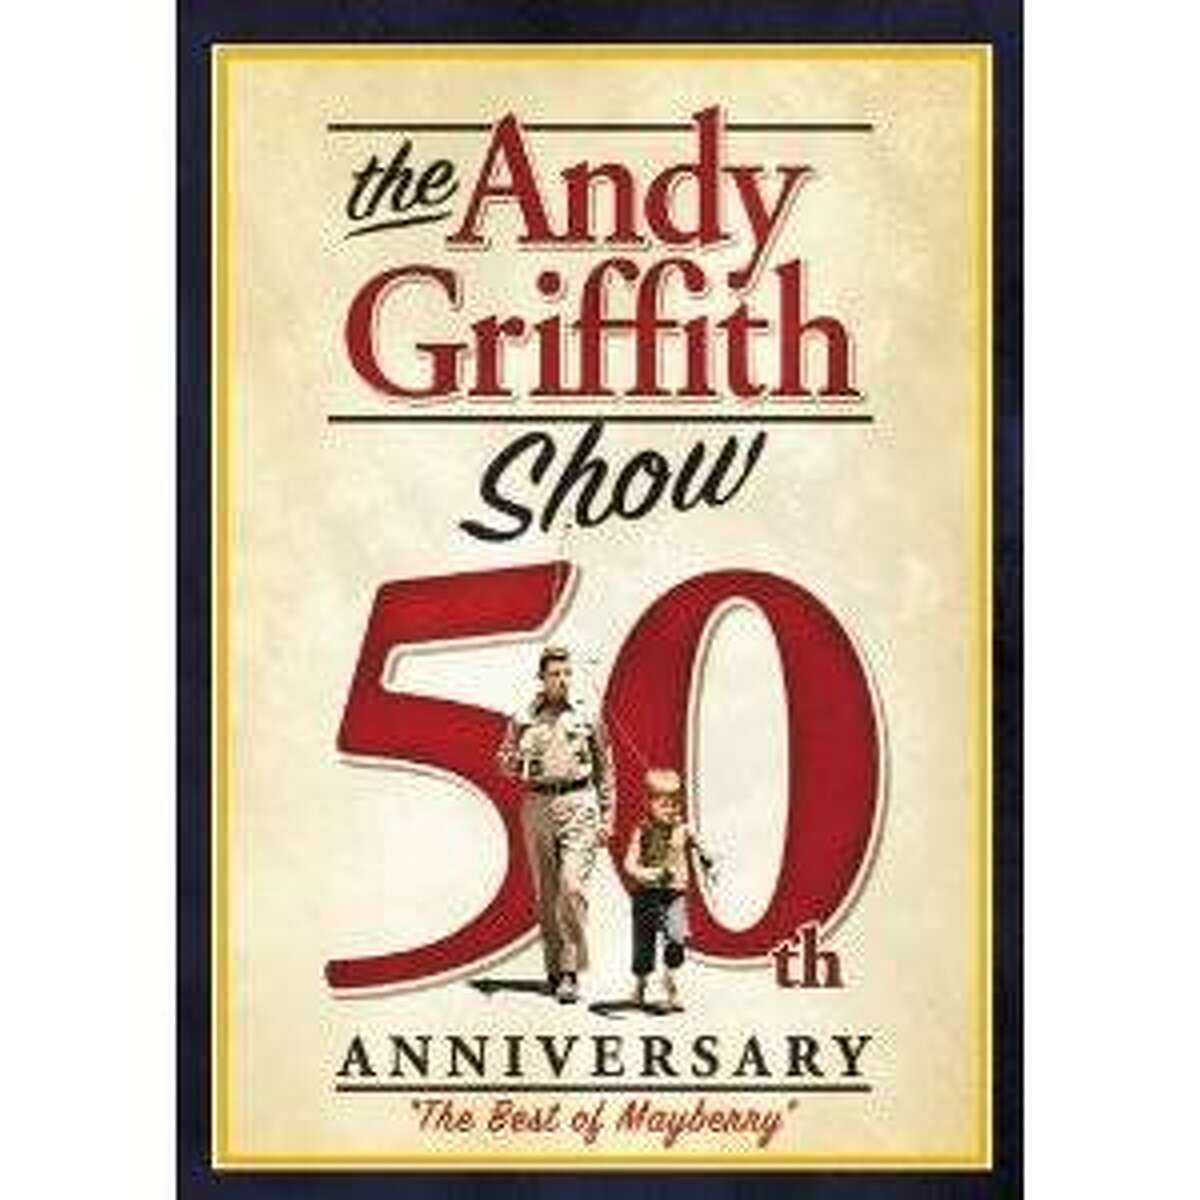 dvd cover THE ANDY GRIFFITH SHOW 50TH ANNIVERSARY: THE BEST OF MAYBERRY